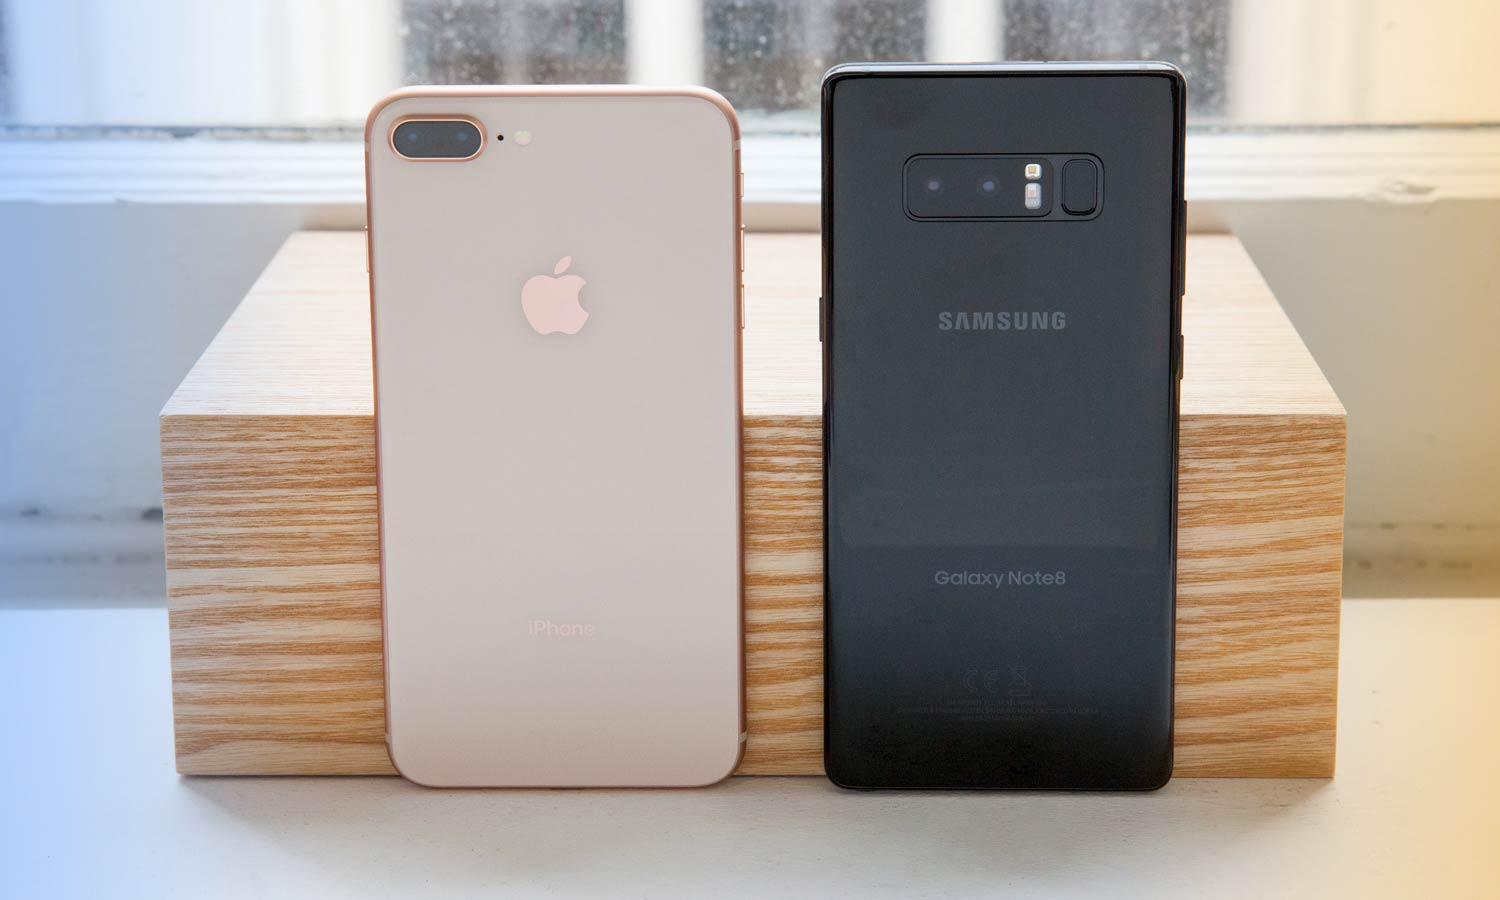 Iphone 8 Plus Vs Galaxy Note 8 Camera Face Off Apple Has The Edge Tom S Guide